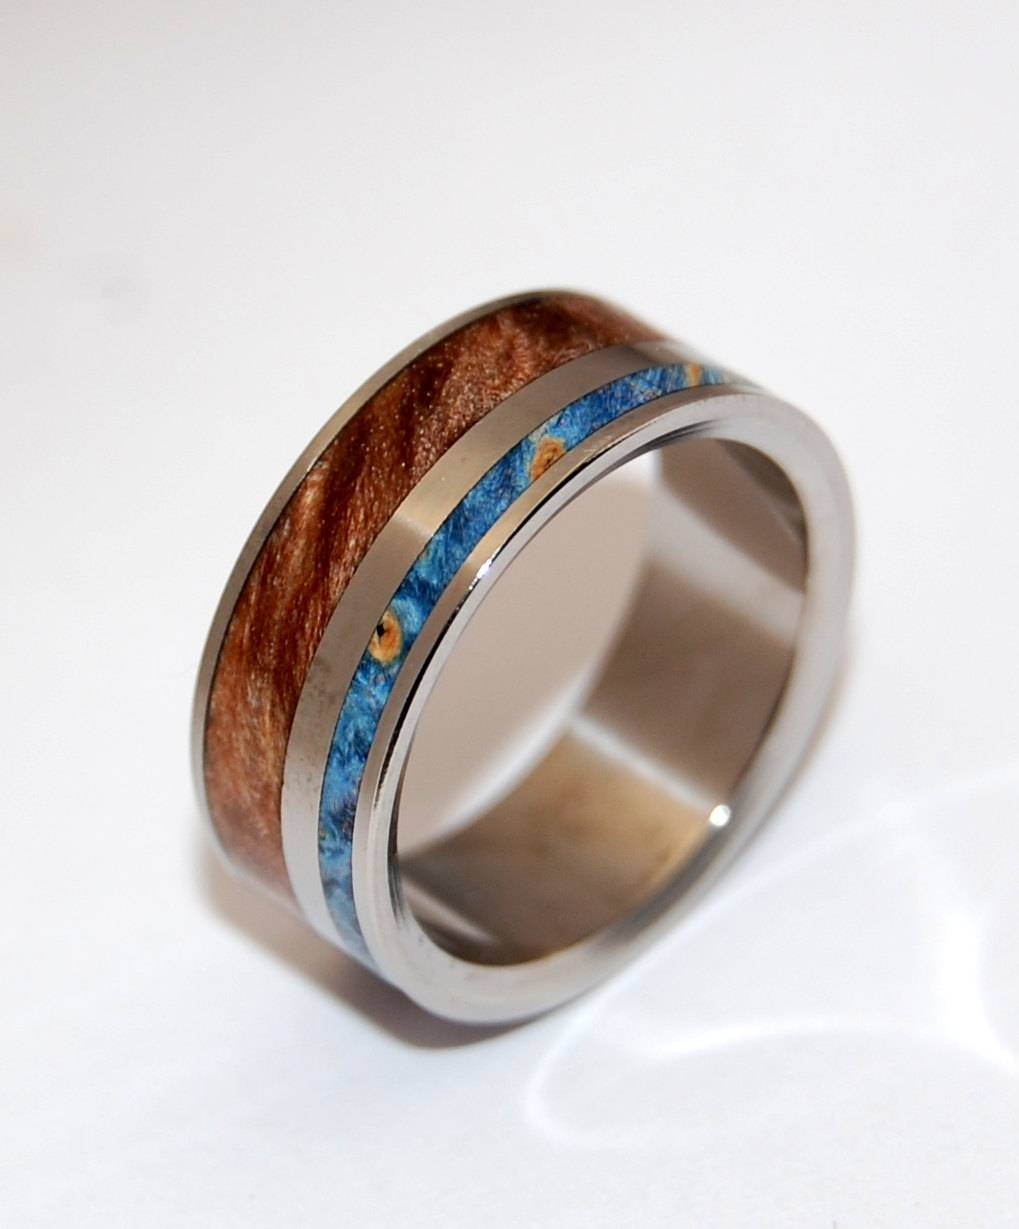 Titanium Ring Wedding Ring Wooden Wedding Rings Wood Ring With Regard To Wood Wedding Bands (View 4 of 15)